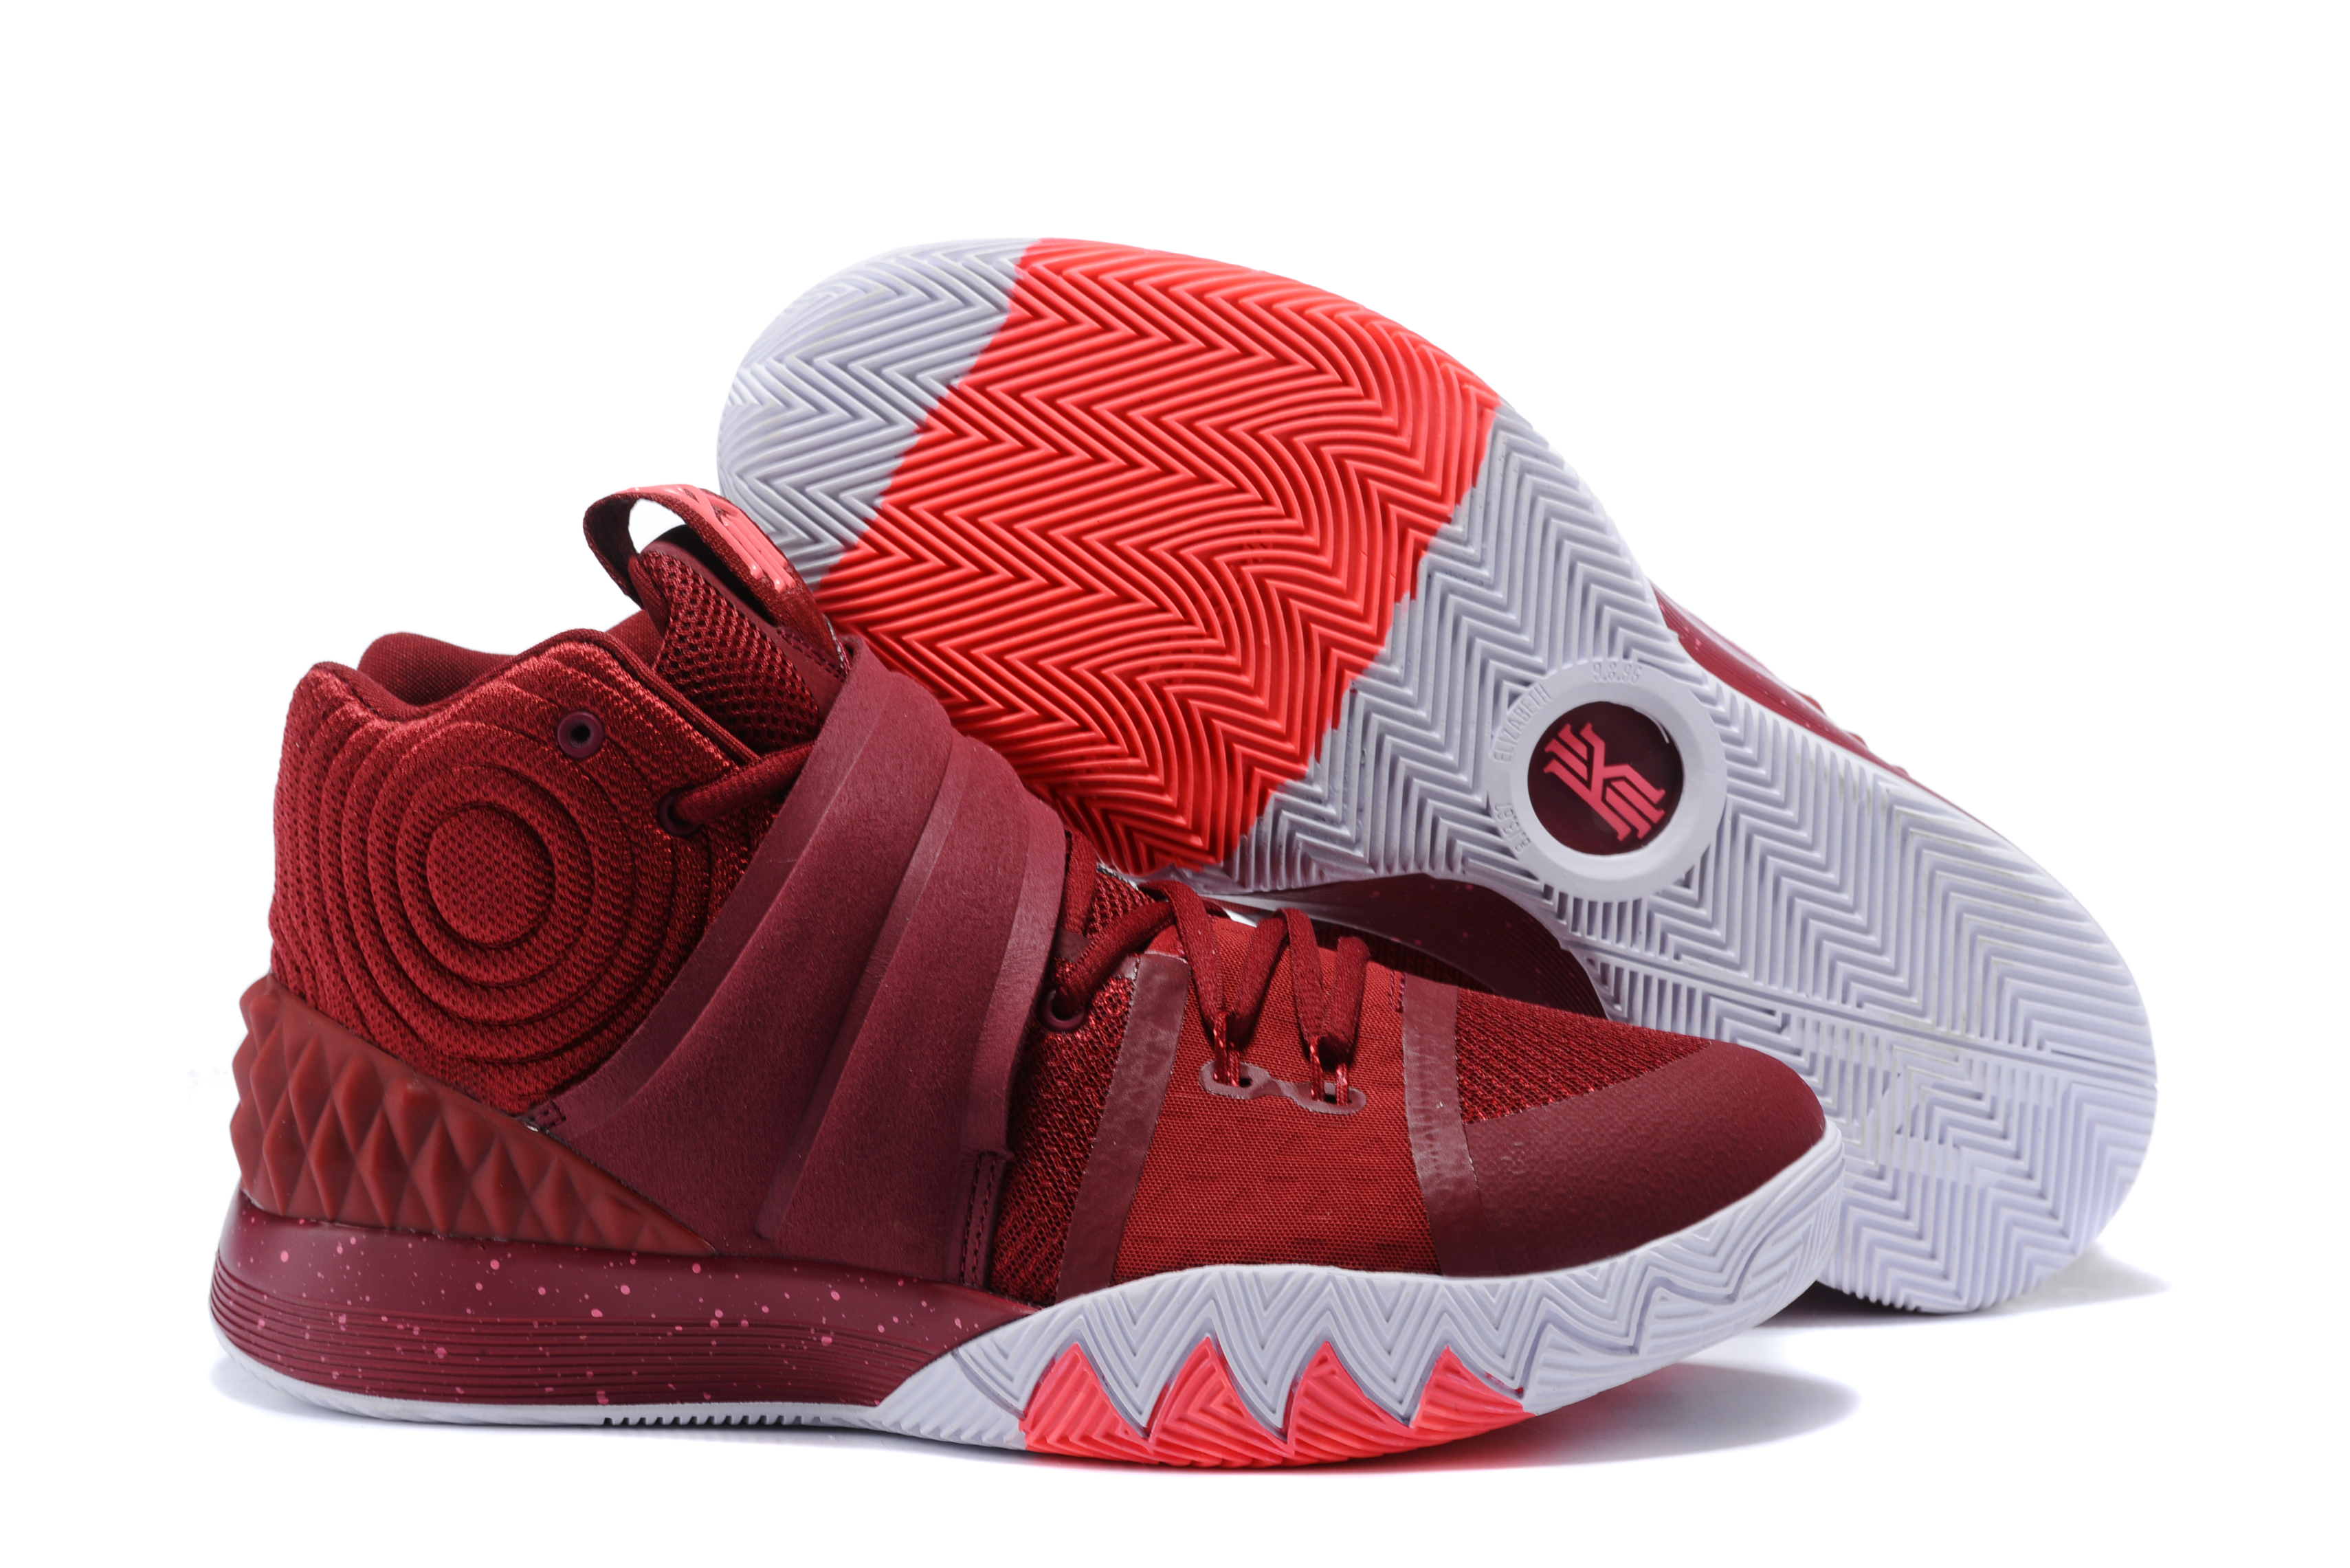 Nike Kyrie S1HYBRID Wine Red Shoes